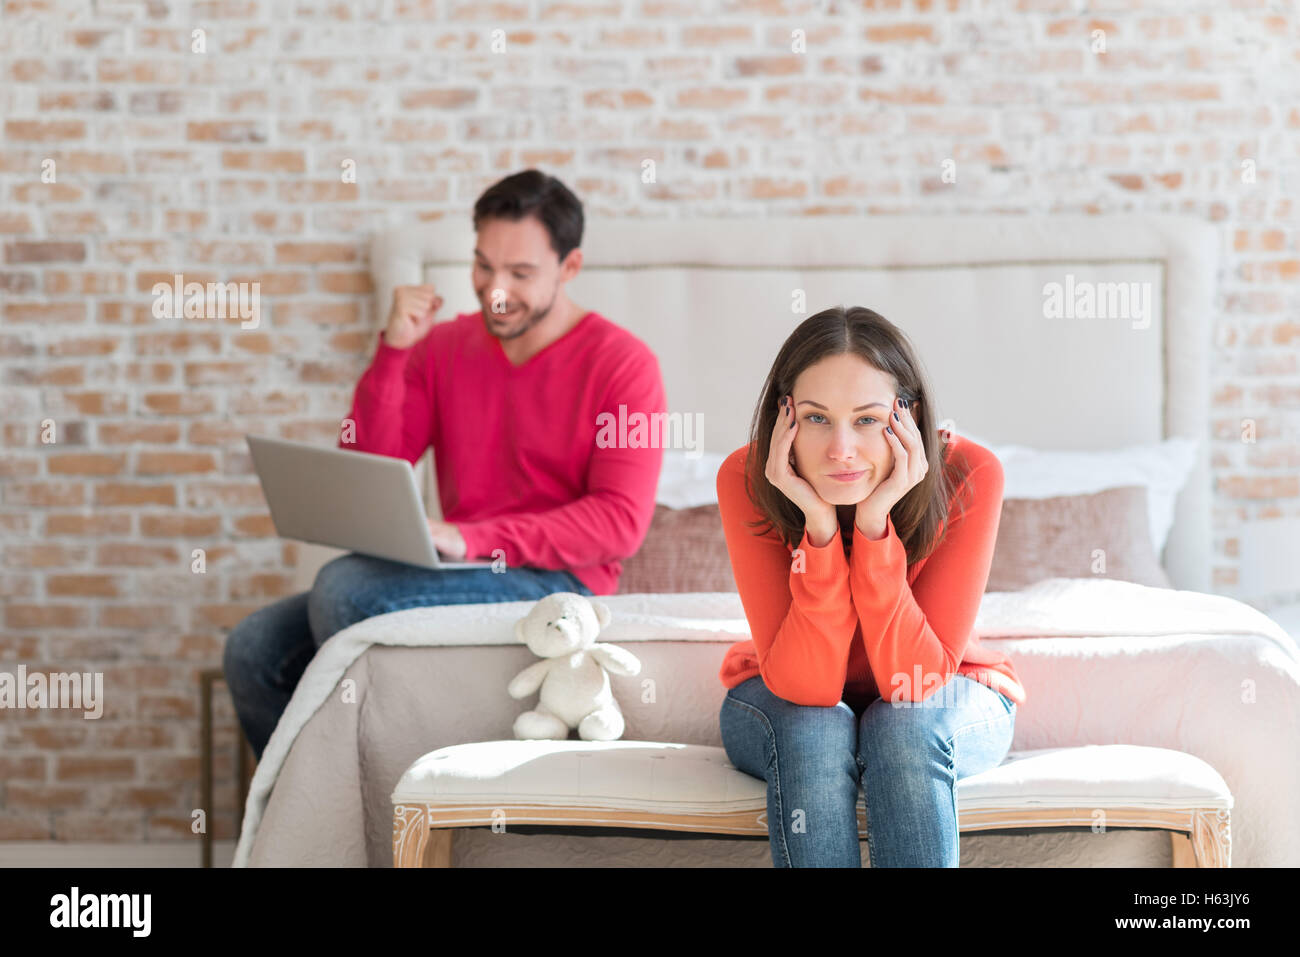 Dissatisfied unhappy woman sitting in the bedroom - Stock Image